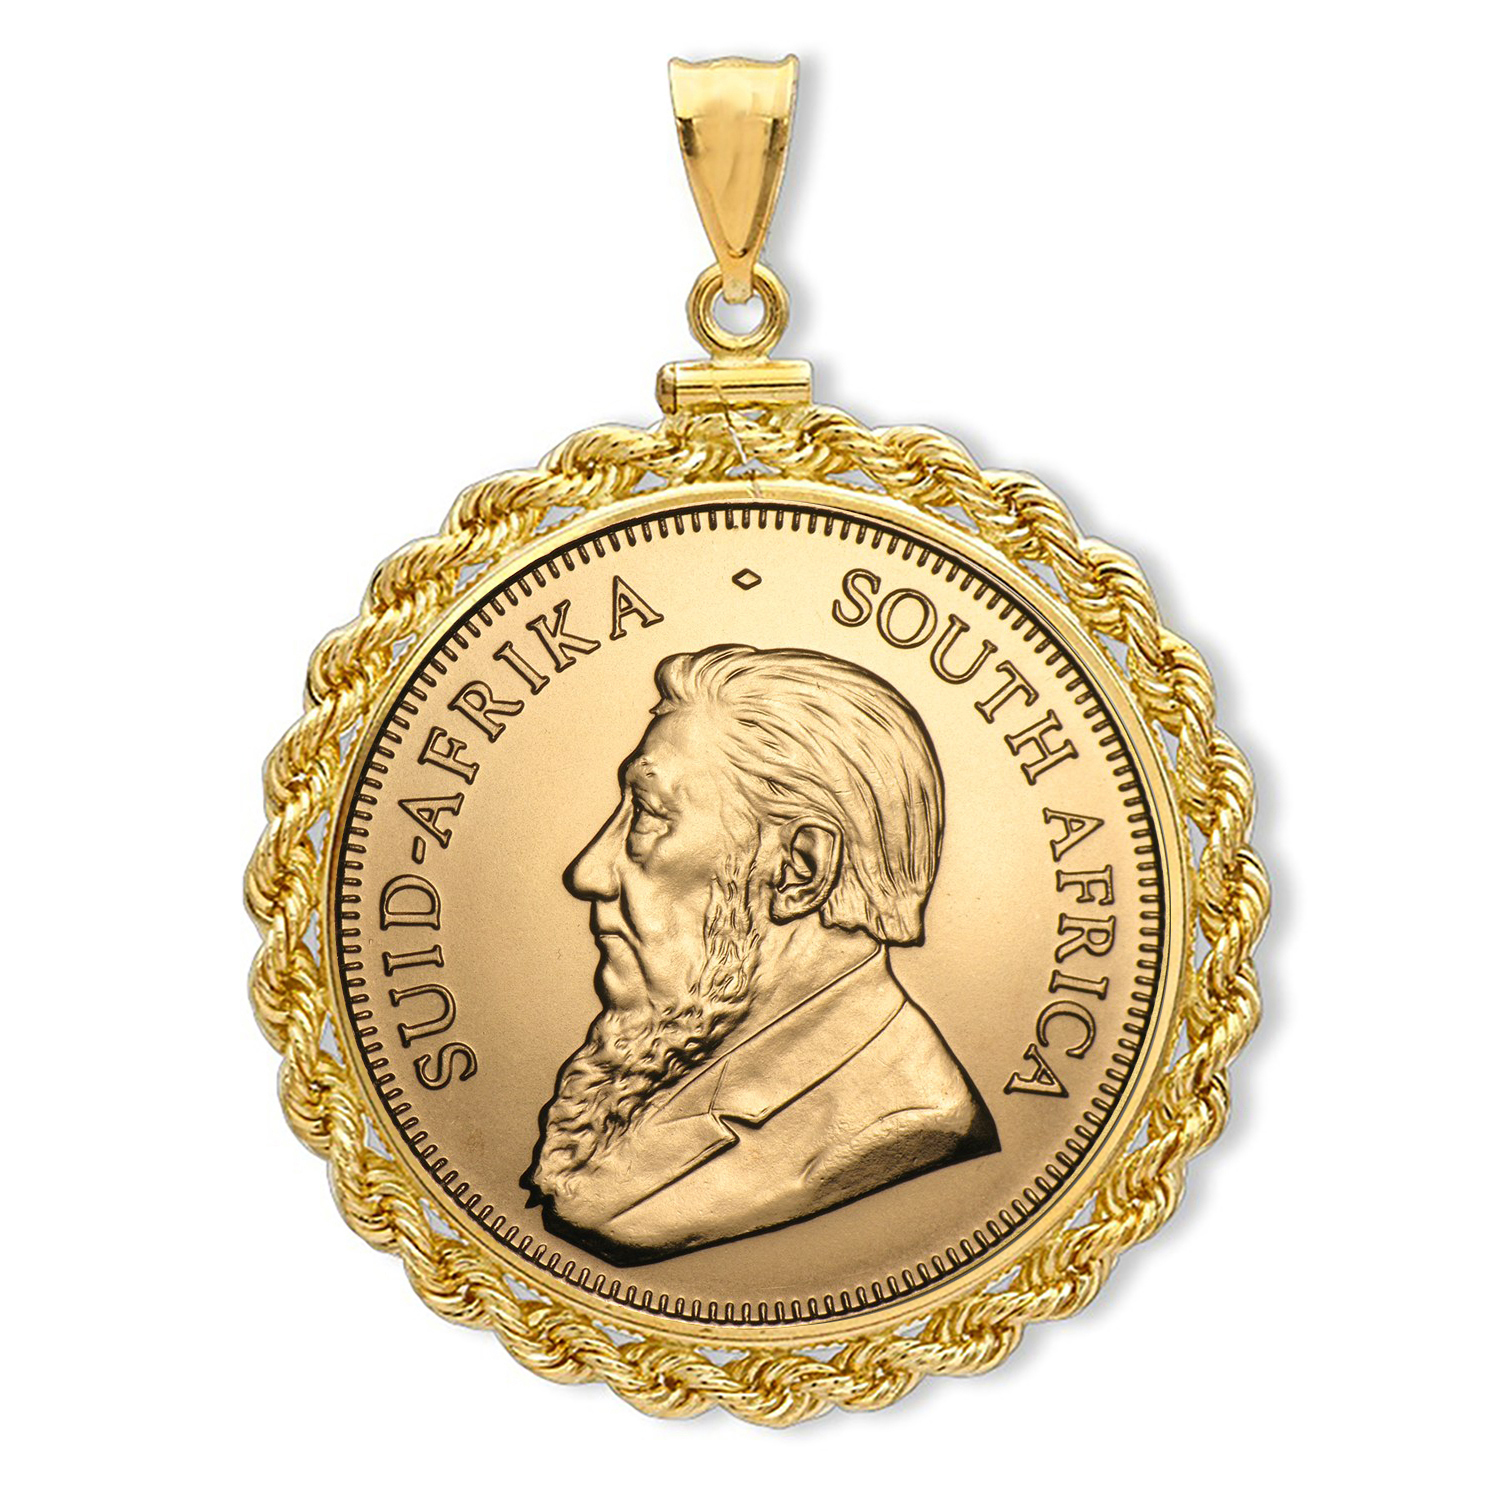 2016 1 oz Gold Krugerrand Pendant (Rope-ScrewTop Bezel)